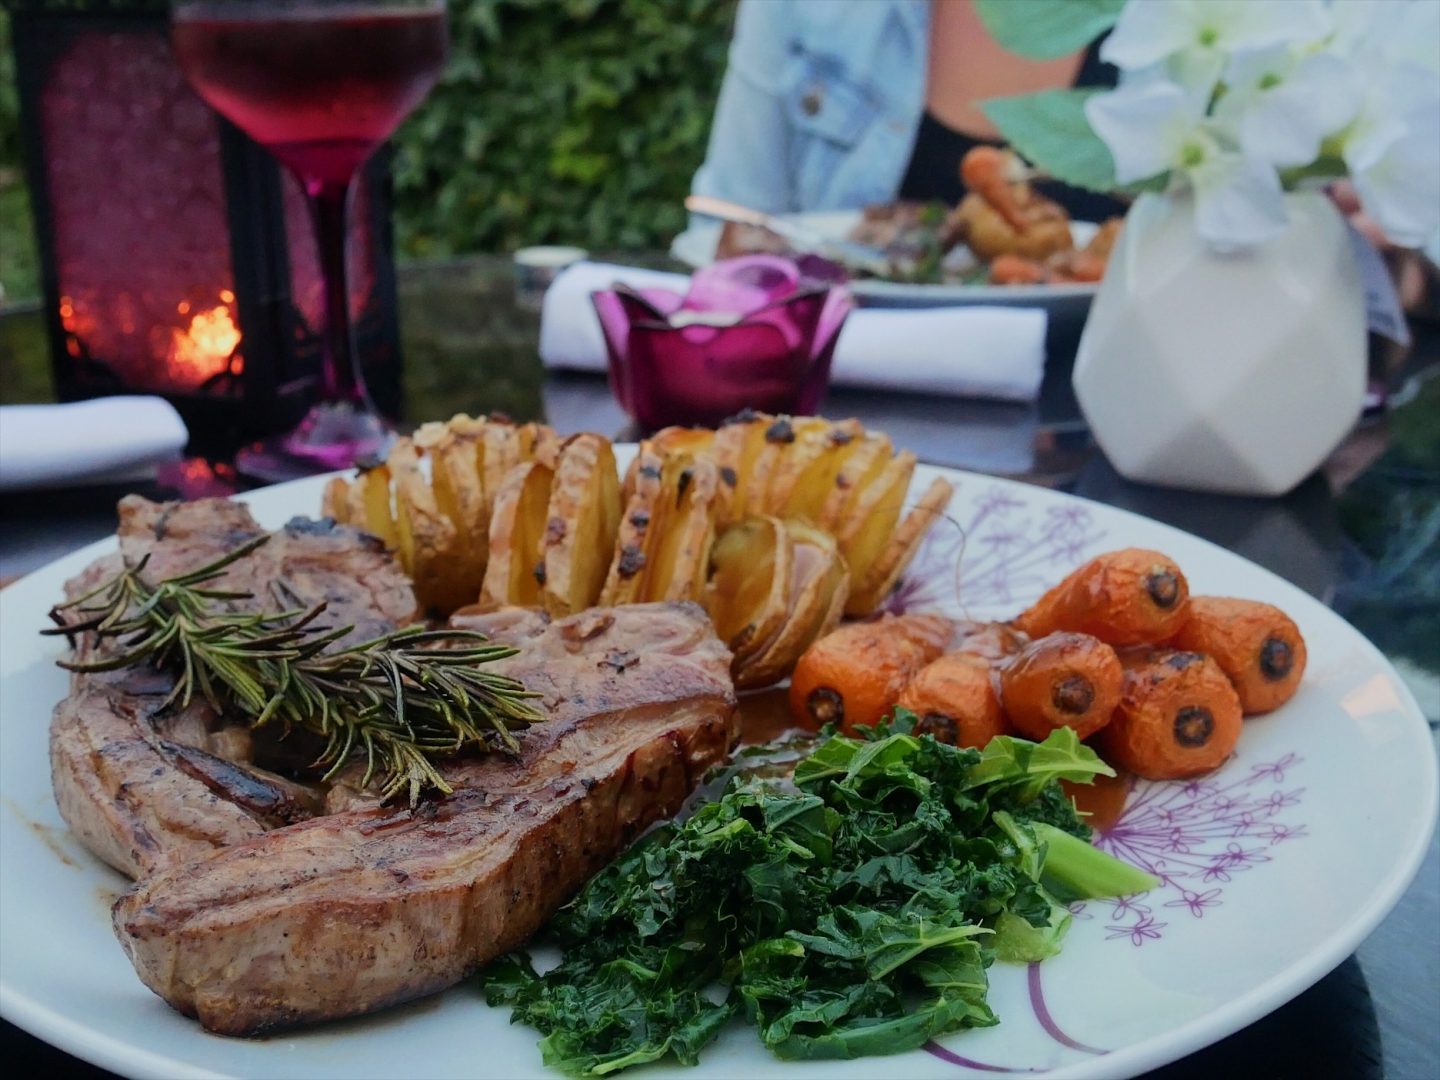 Oak-smoked lamb chops with garlic and rosemary, teamed with kale, roast carrots and Hasselback potatoes - the main course in the Welsh three-course dinner menu